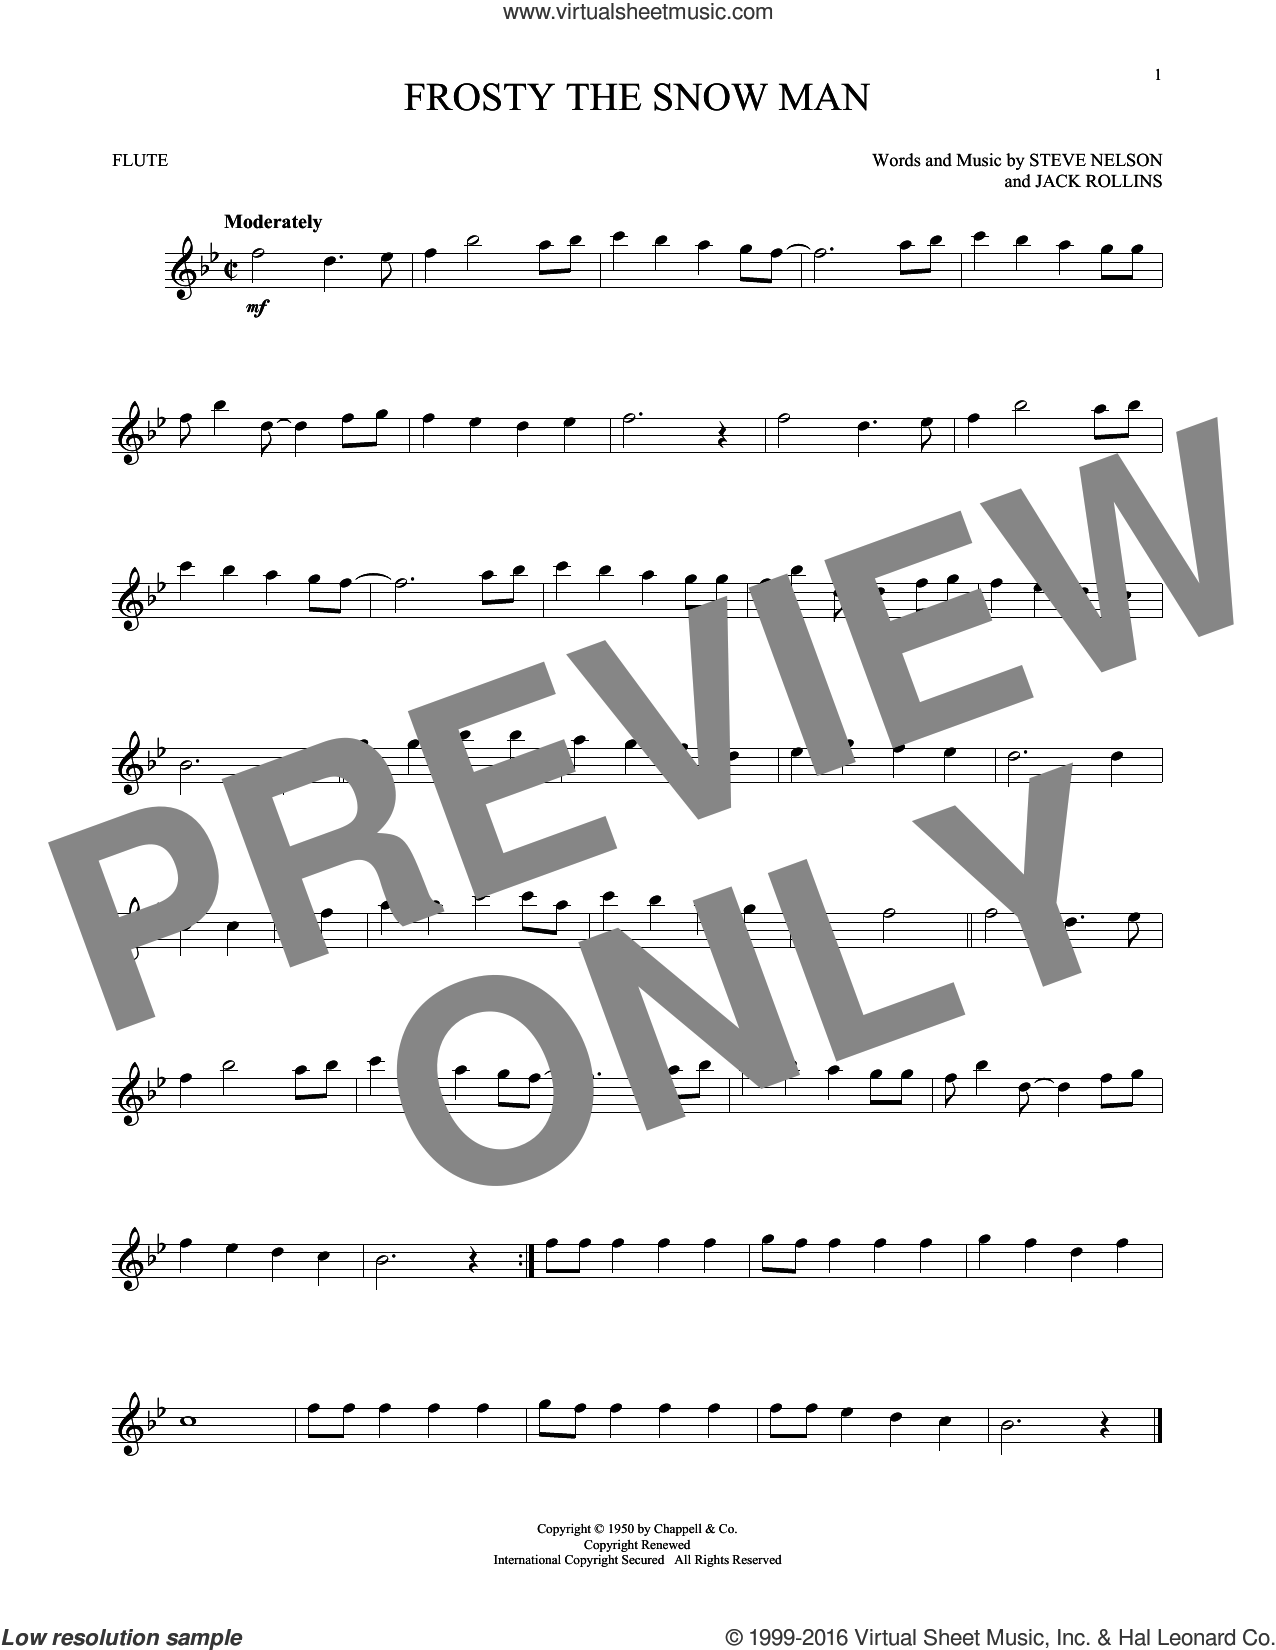 Frosty The Snow Man sheet music for flute solo by Steve Nelson and Jack Rollins. Score Image Preview.